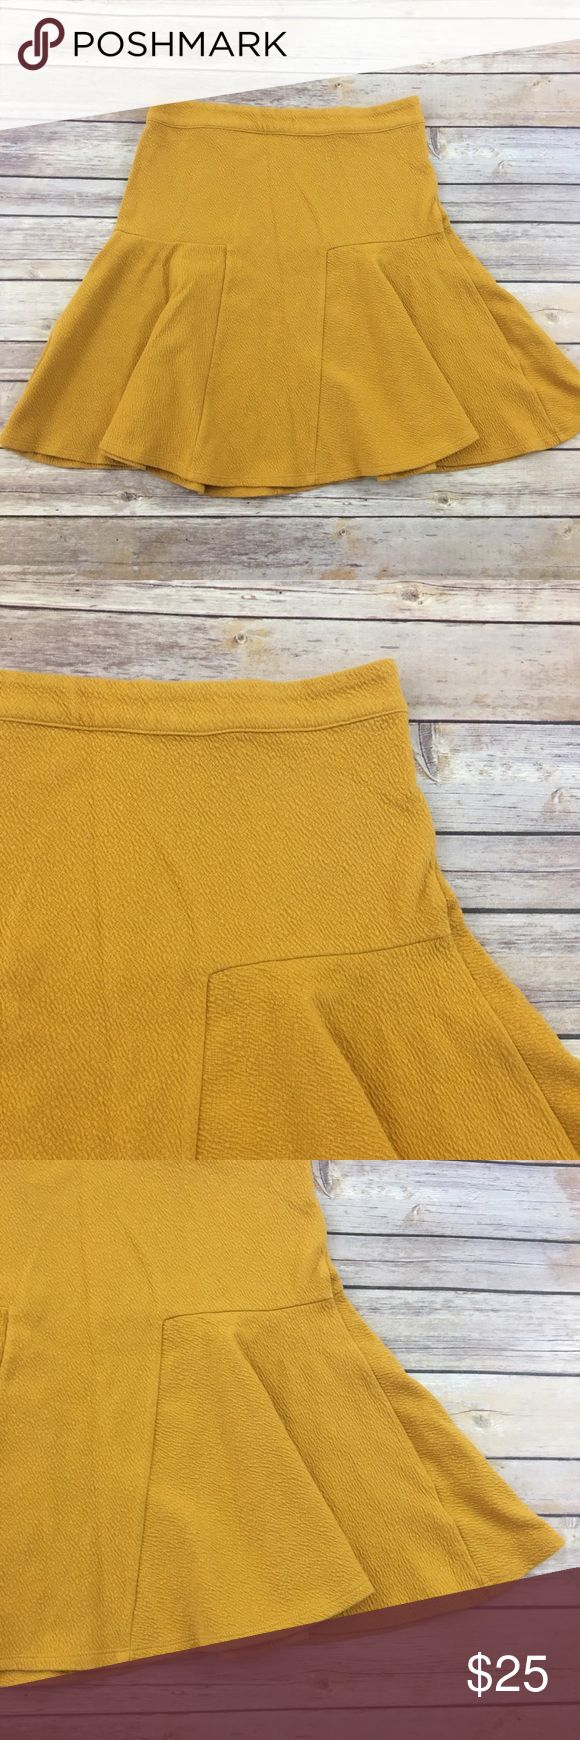 Maeve mustard yellow skirt Cute mustard yellow textured skirt by Maeve Anthropologie. Good condition. Measures about 30 inches around the waist and is about 19 inches long. Anthropologie Skirts A-Line or Full